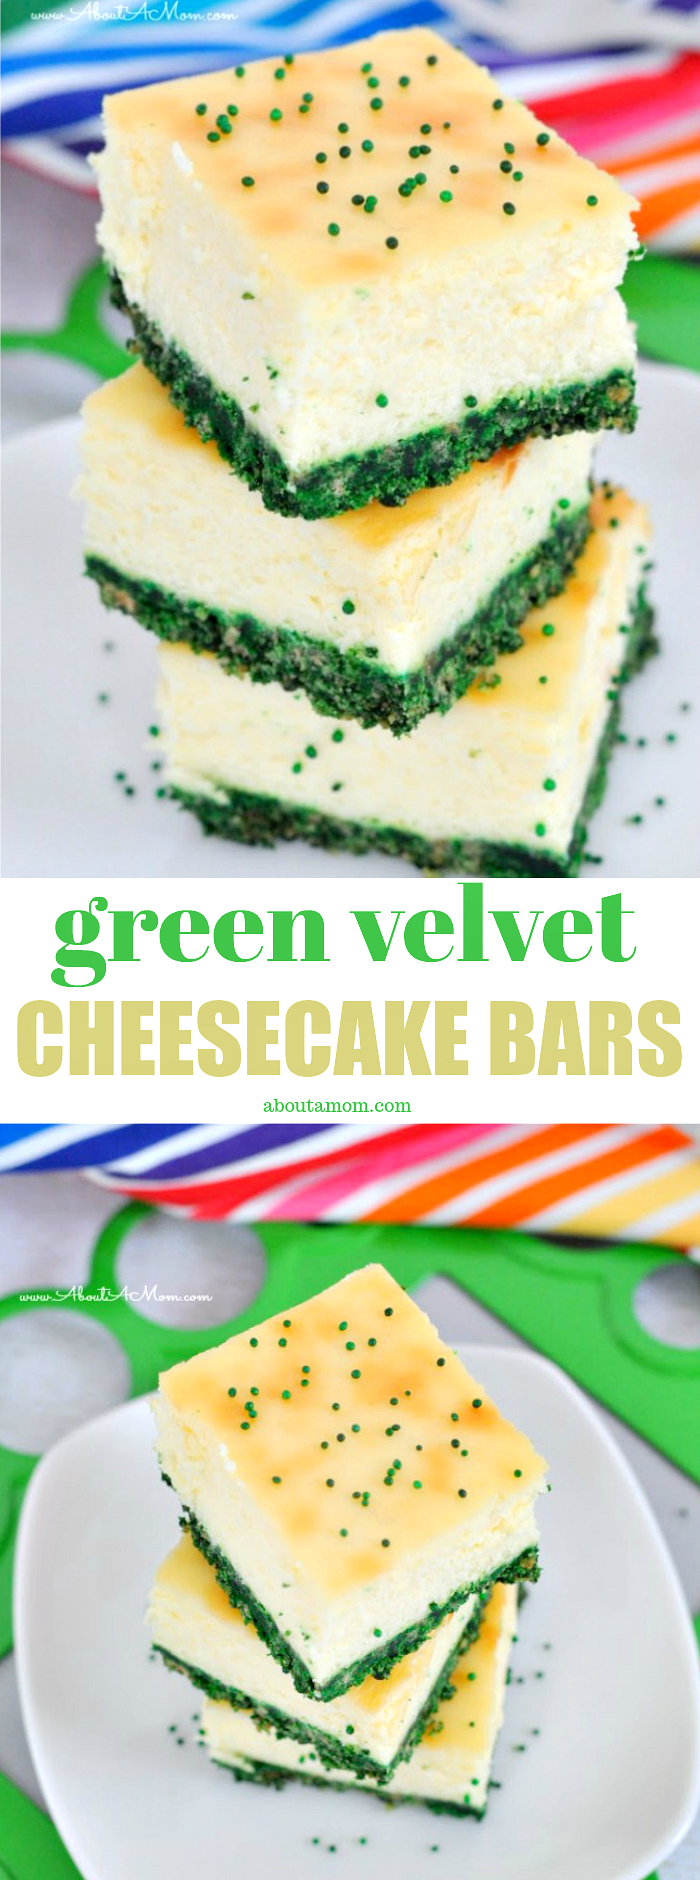 Green Velvet Cheesecake bars are festive and delicious. A perfect St. Patrick's Day dessert!